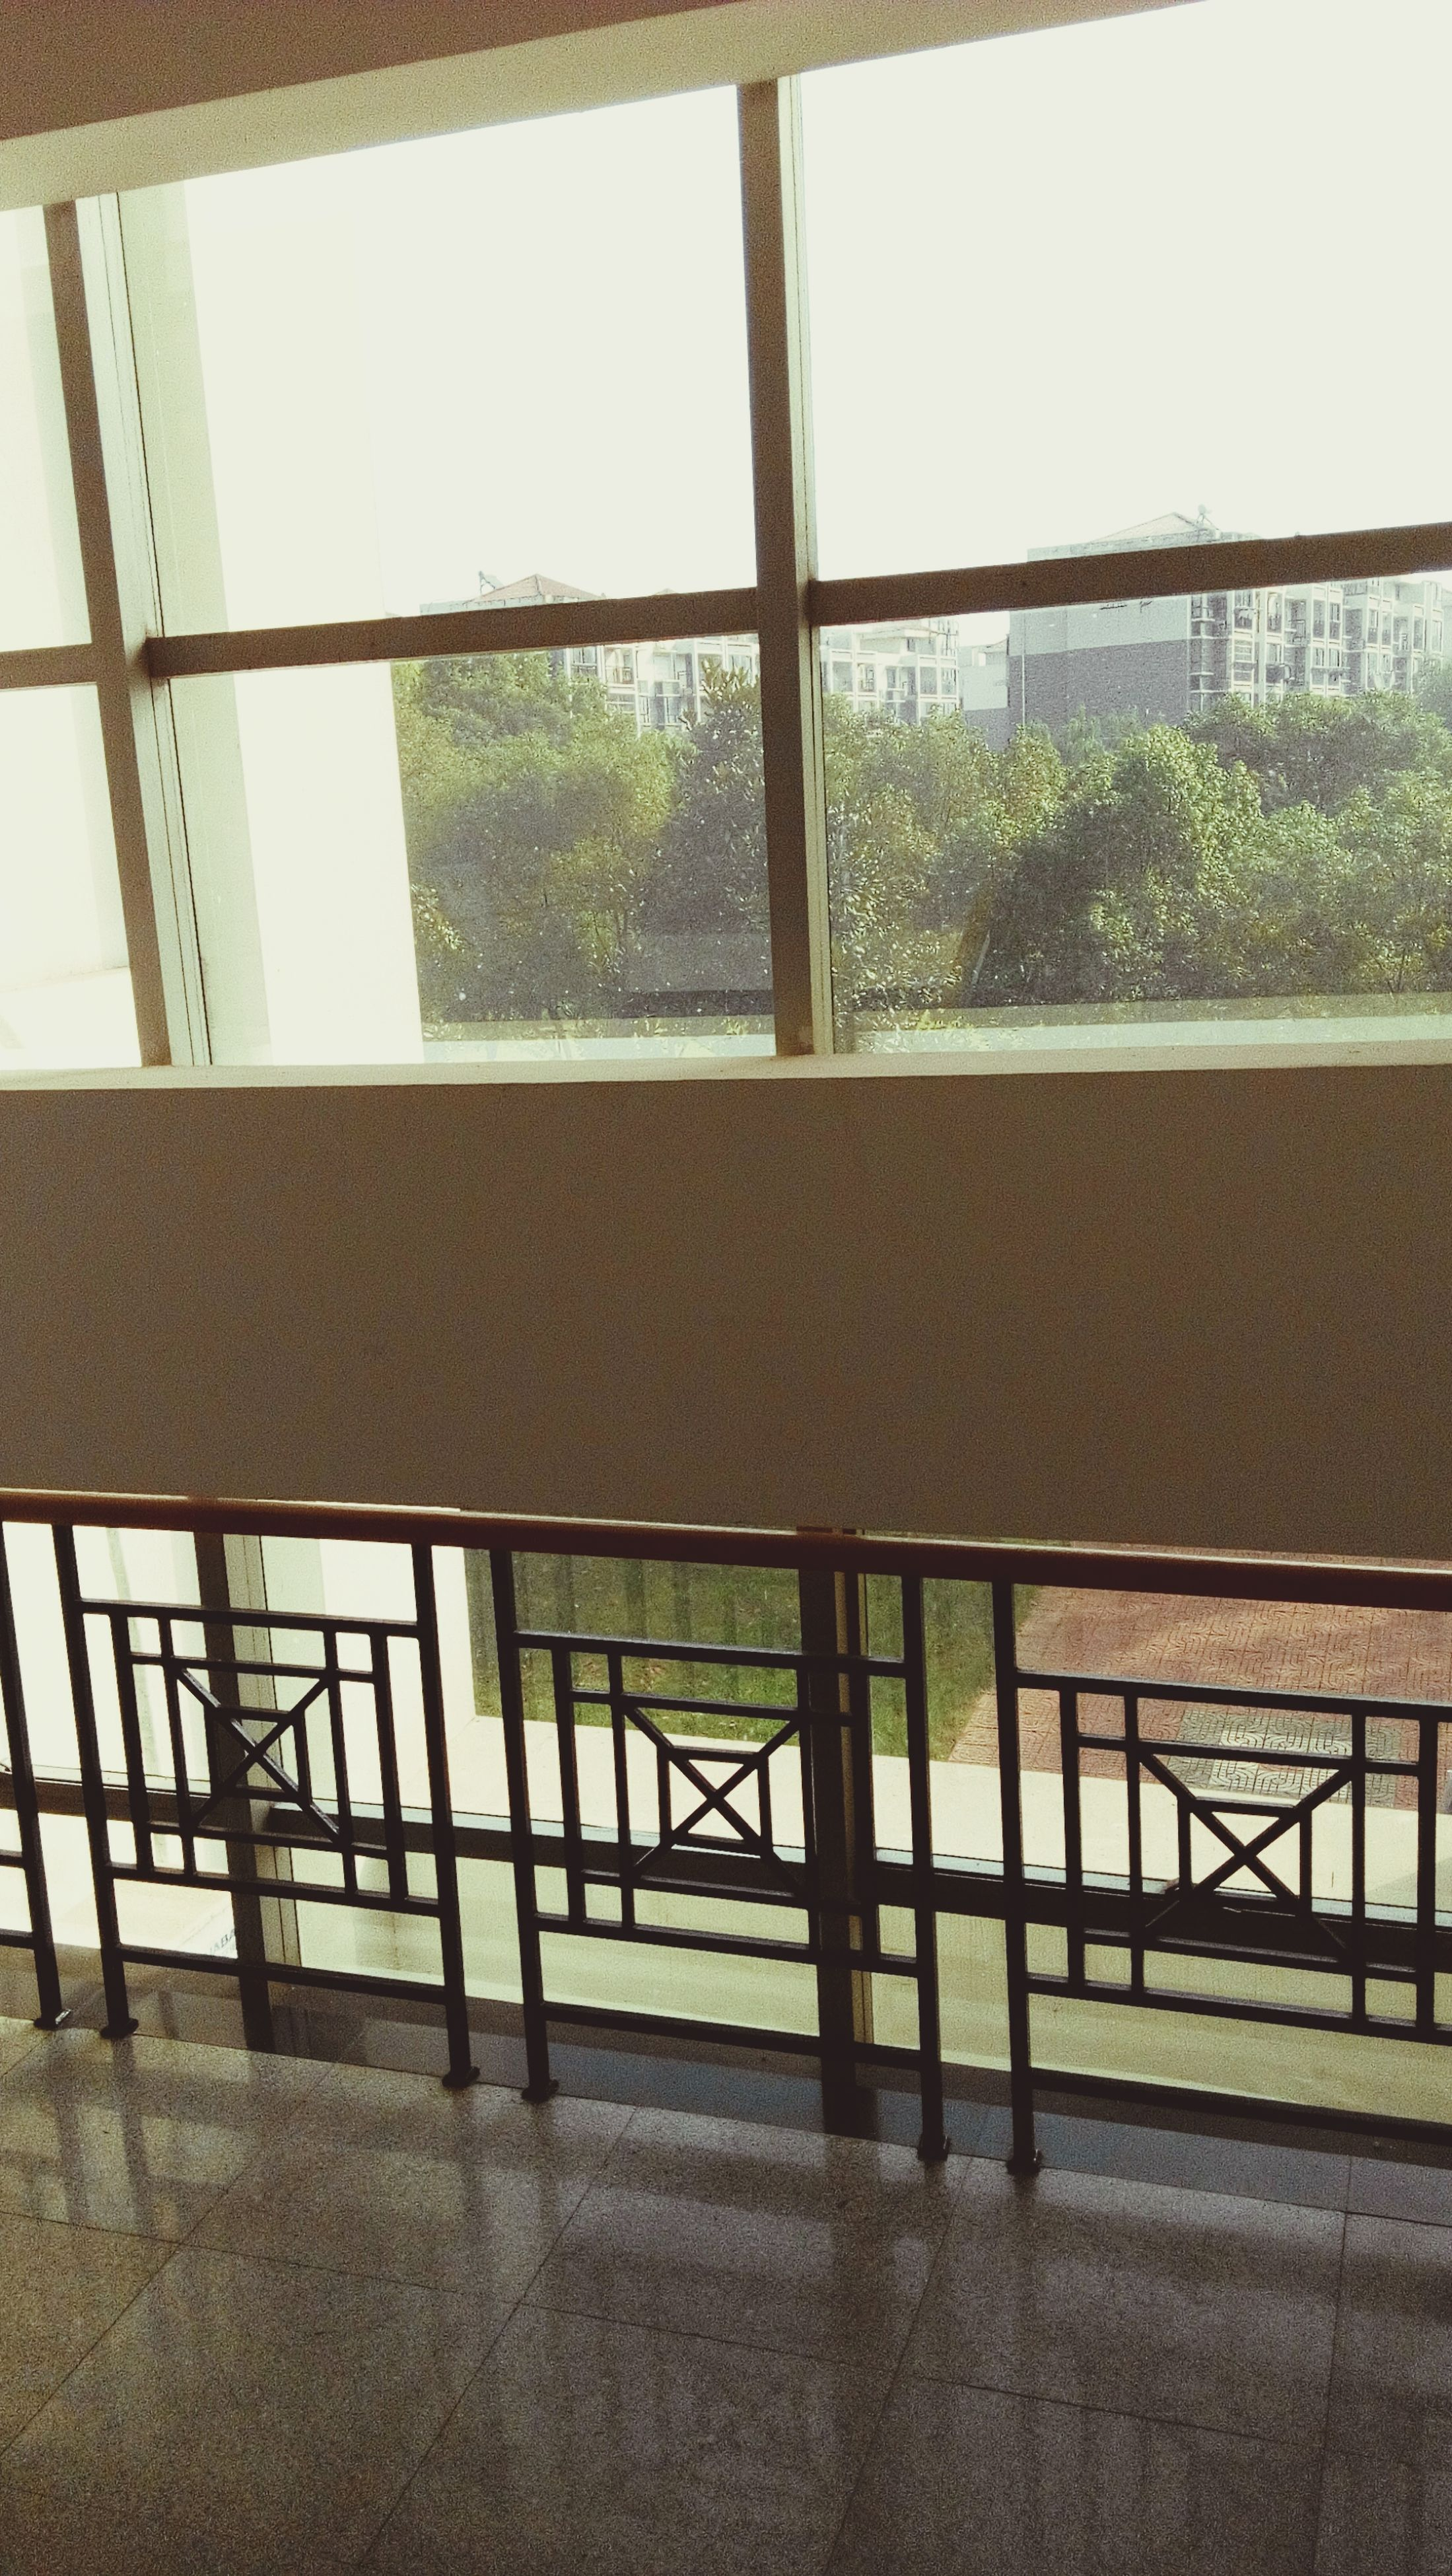 window, architecture, built structure, indoors, glass - material, building exterior, transparent, railing, house, day, sunlight, no people, wall - building feature, door, closed, residential structure, building, balcony, residential building, shadow